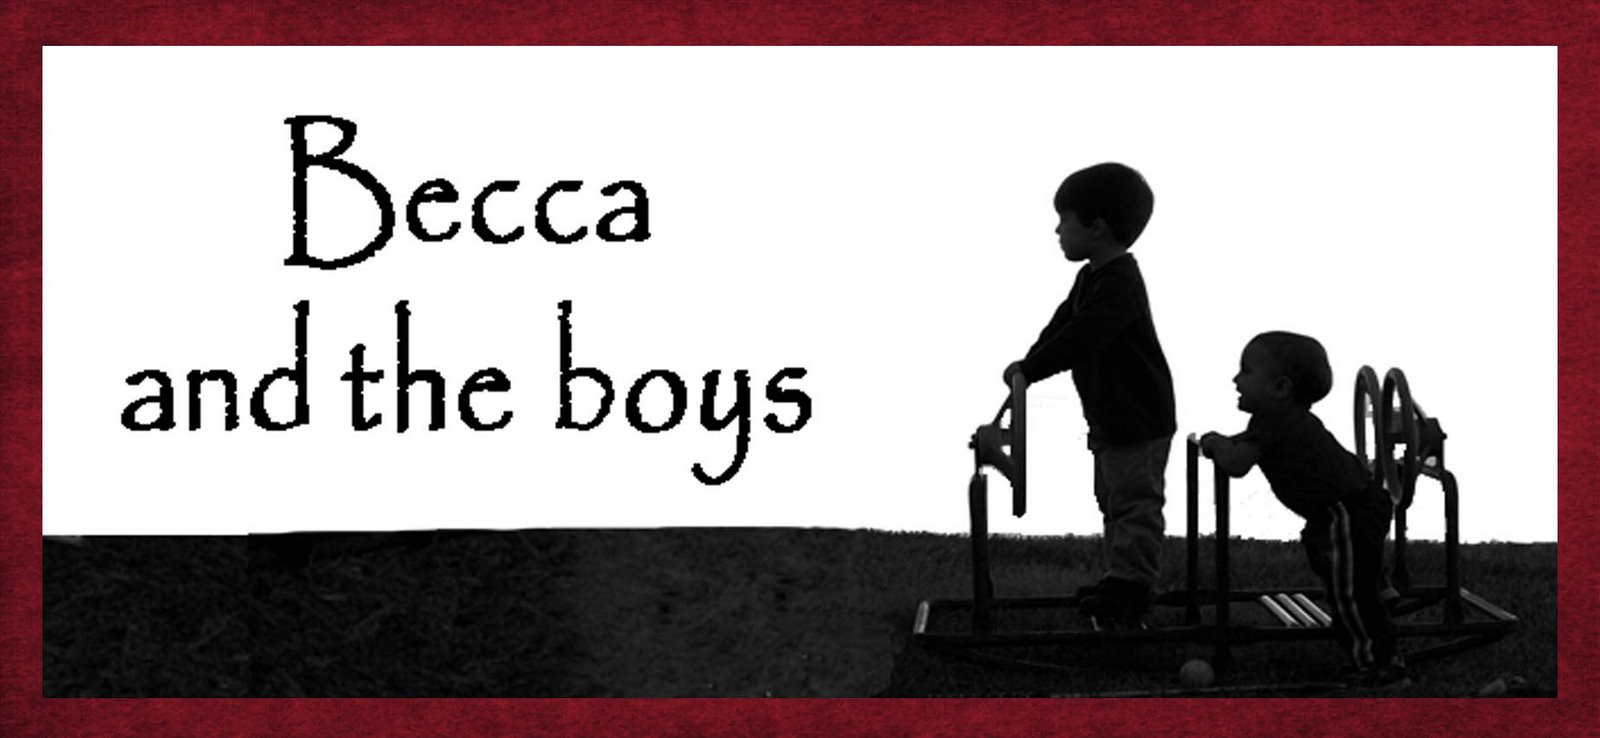 Becca and the boys